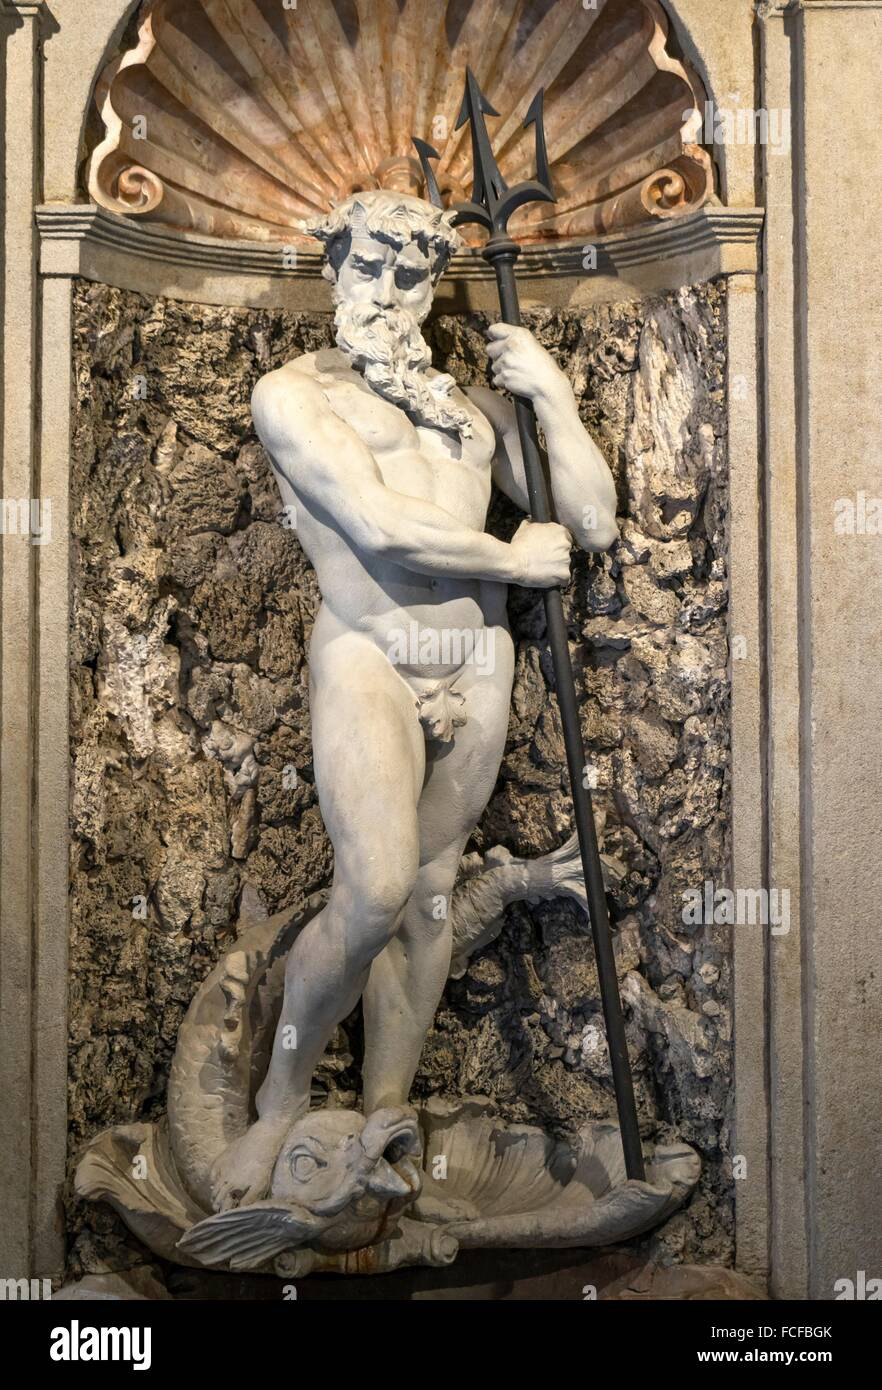 Classical statue of the god Poseidon in the court of an old palace downtown Milan, Lombardy, Italy - Stock Image